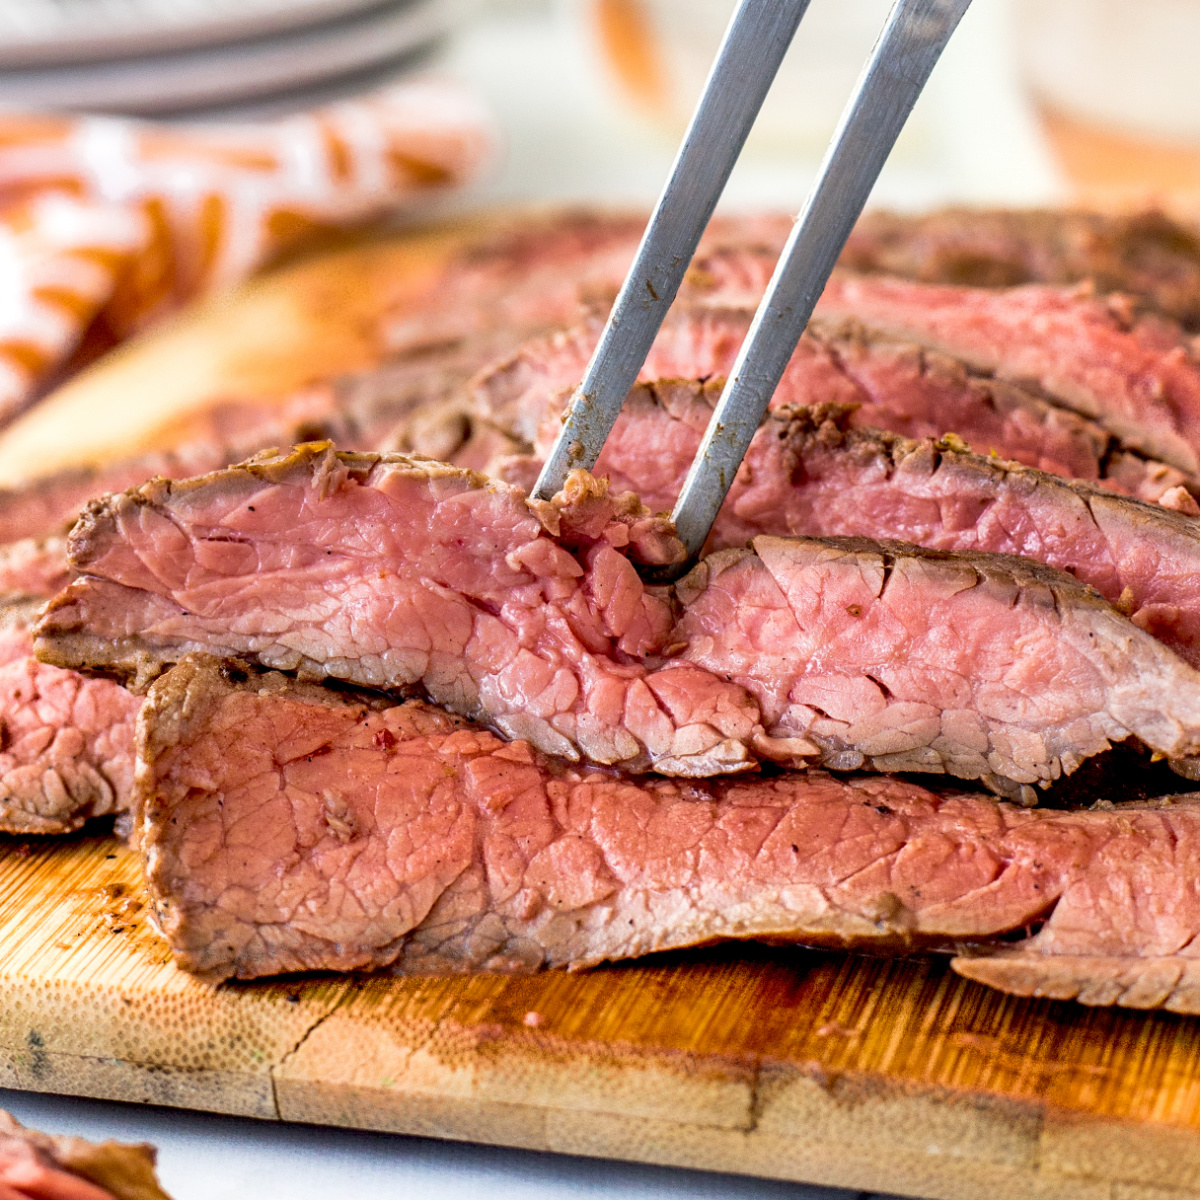 Thinly sliced Grilled Flank Steak on a wooden board with a large fork.